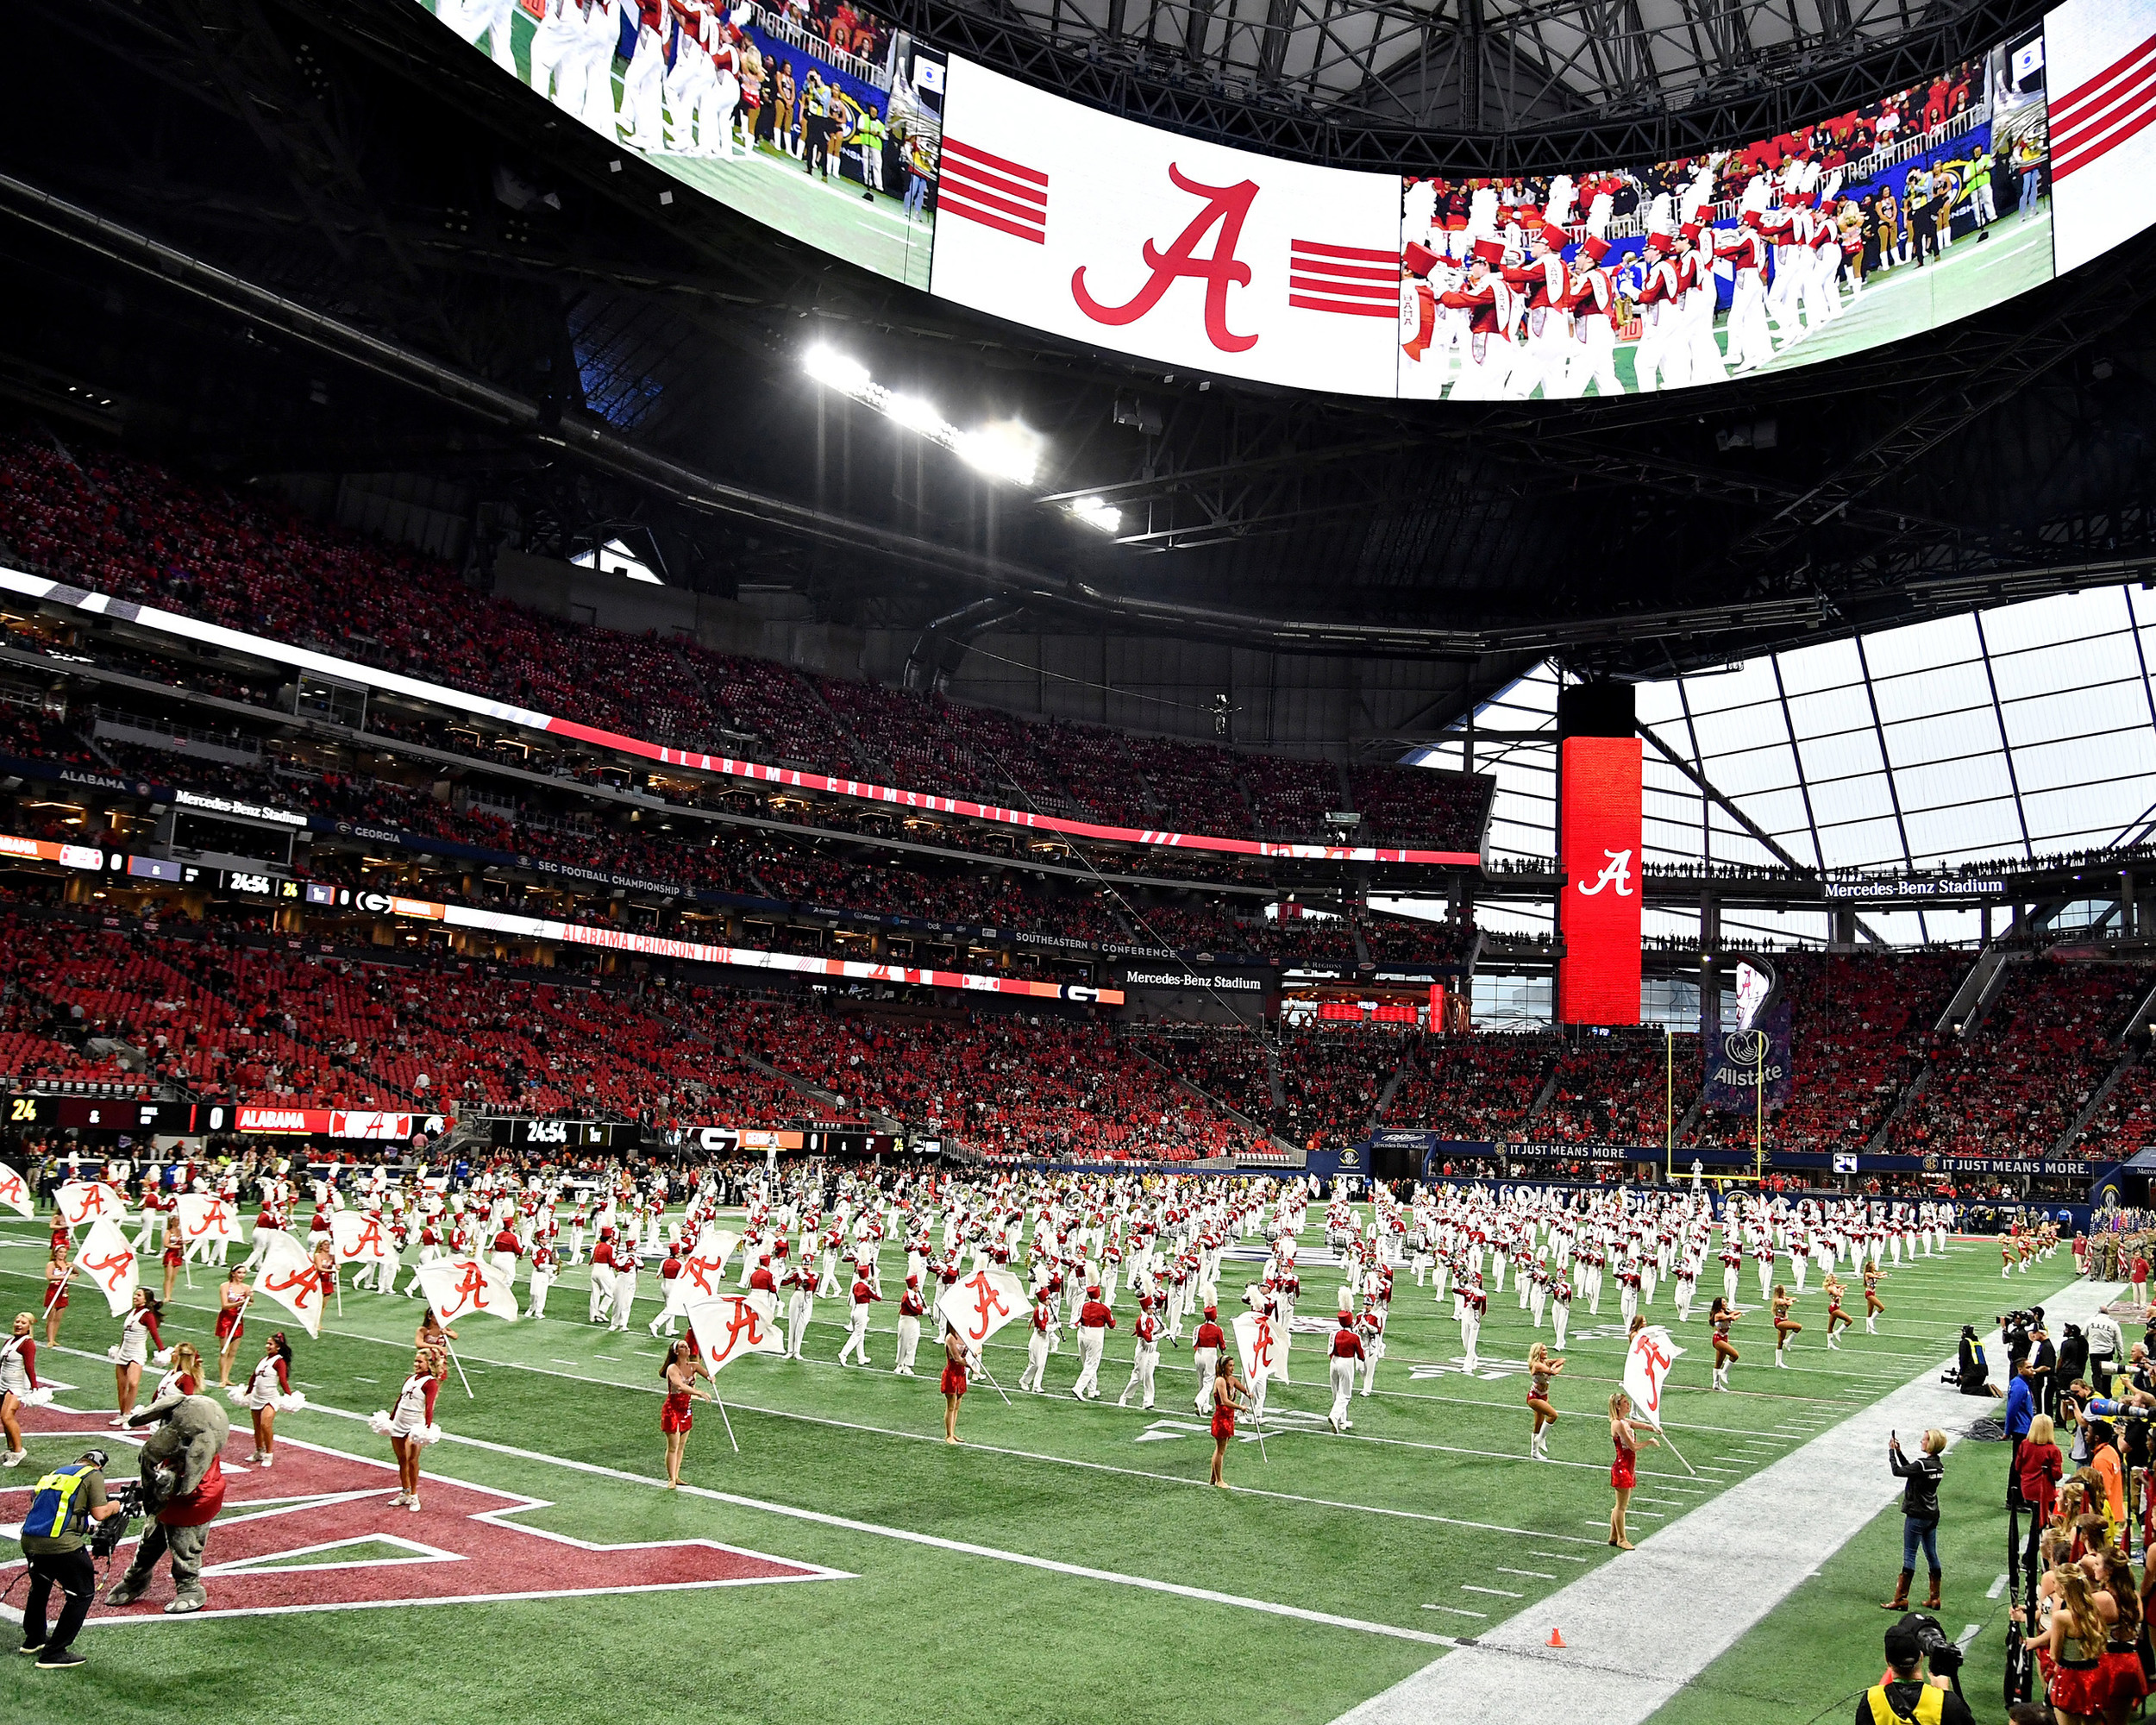 Pre-game for the 2018 SEC Championship football game, featuring the Georgia Bulldogs and the Alabama Crimson Tide, at Mercedes-Benz Stadium in Atlanta, Ga., on Dec. 1, 2018. Alabama wins 35-28. (Photo by Lee Walls)